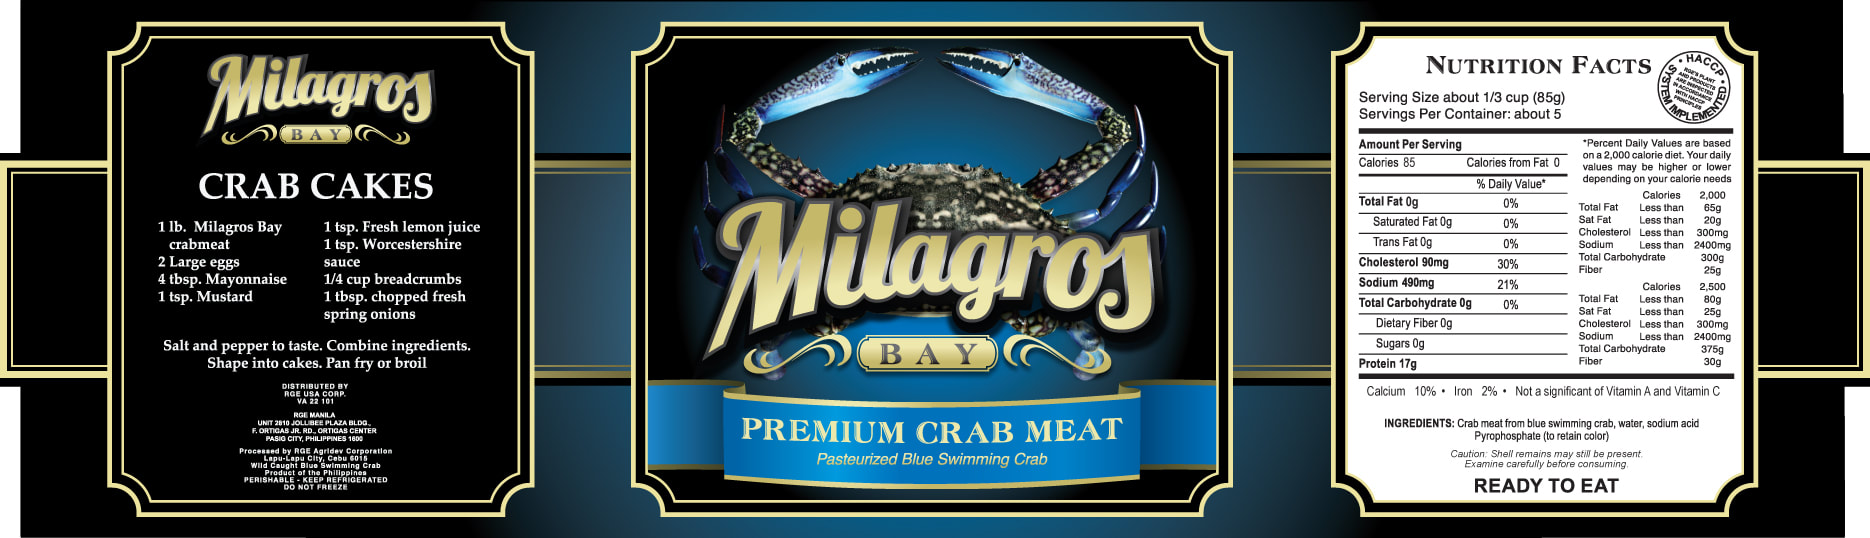 Milagros Bay - Pasteurized Blue Swimming Crab